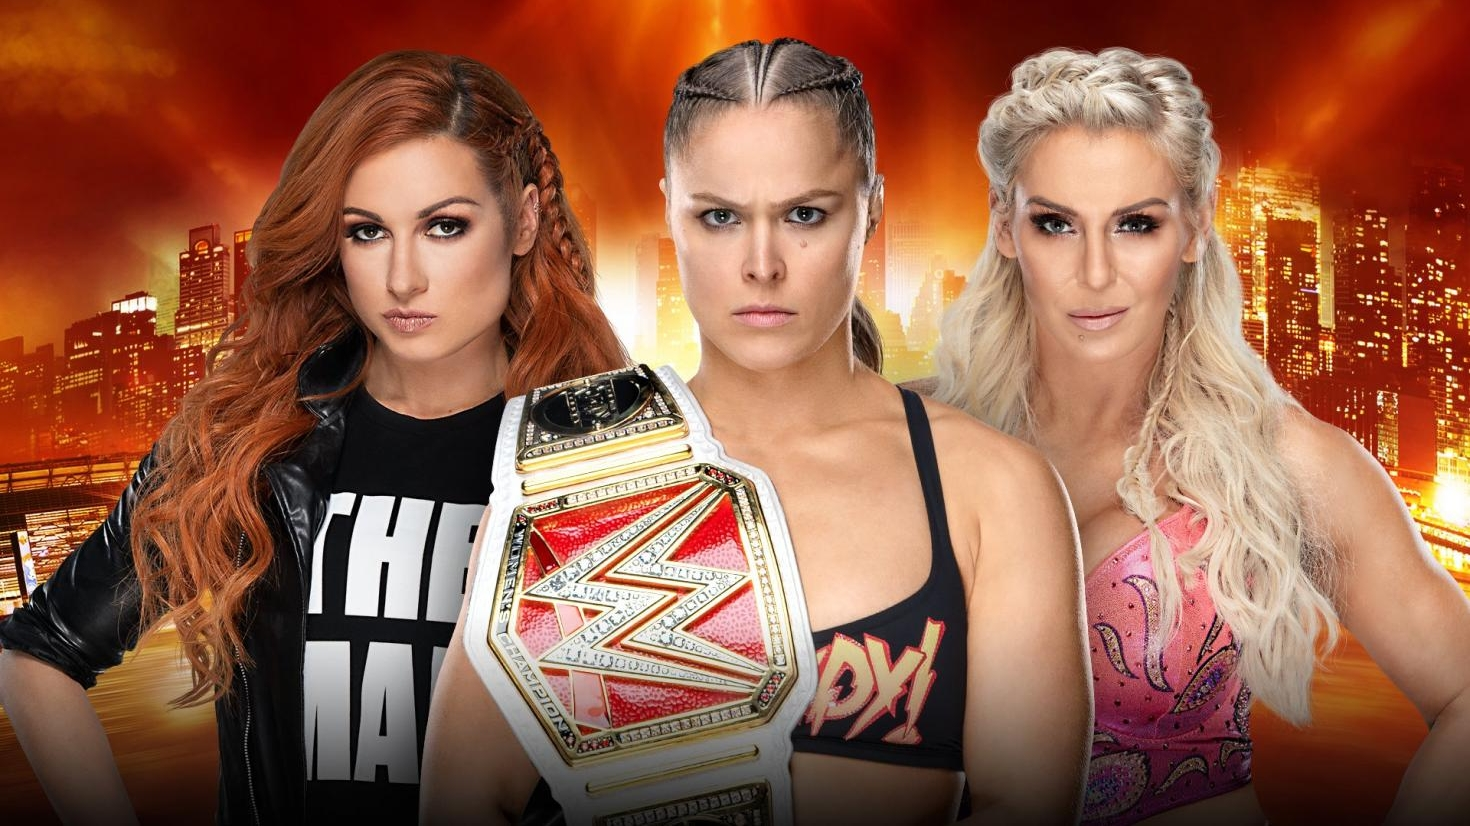 Ronda Rousey, Charlotte Flair, Becky Lynch to star in WrestleMania's first-ever women's main event